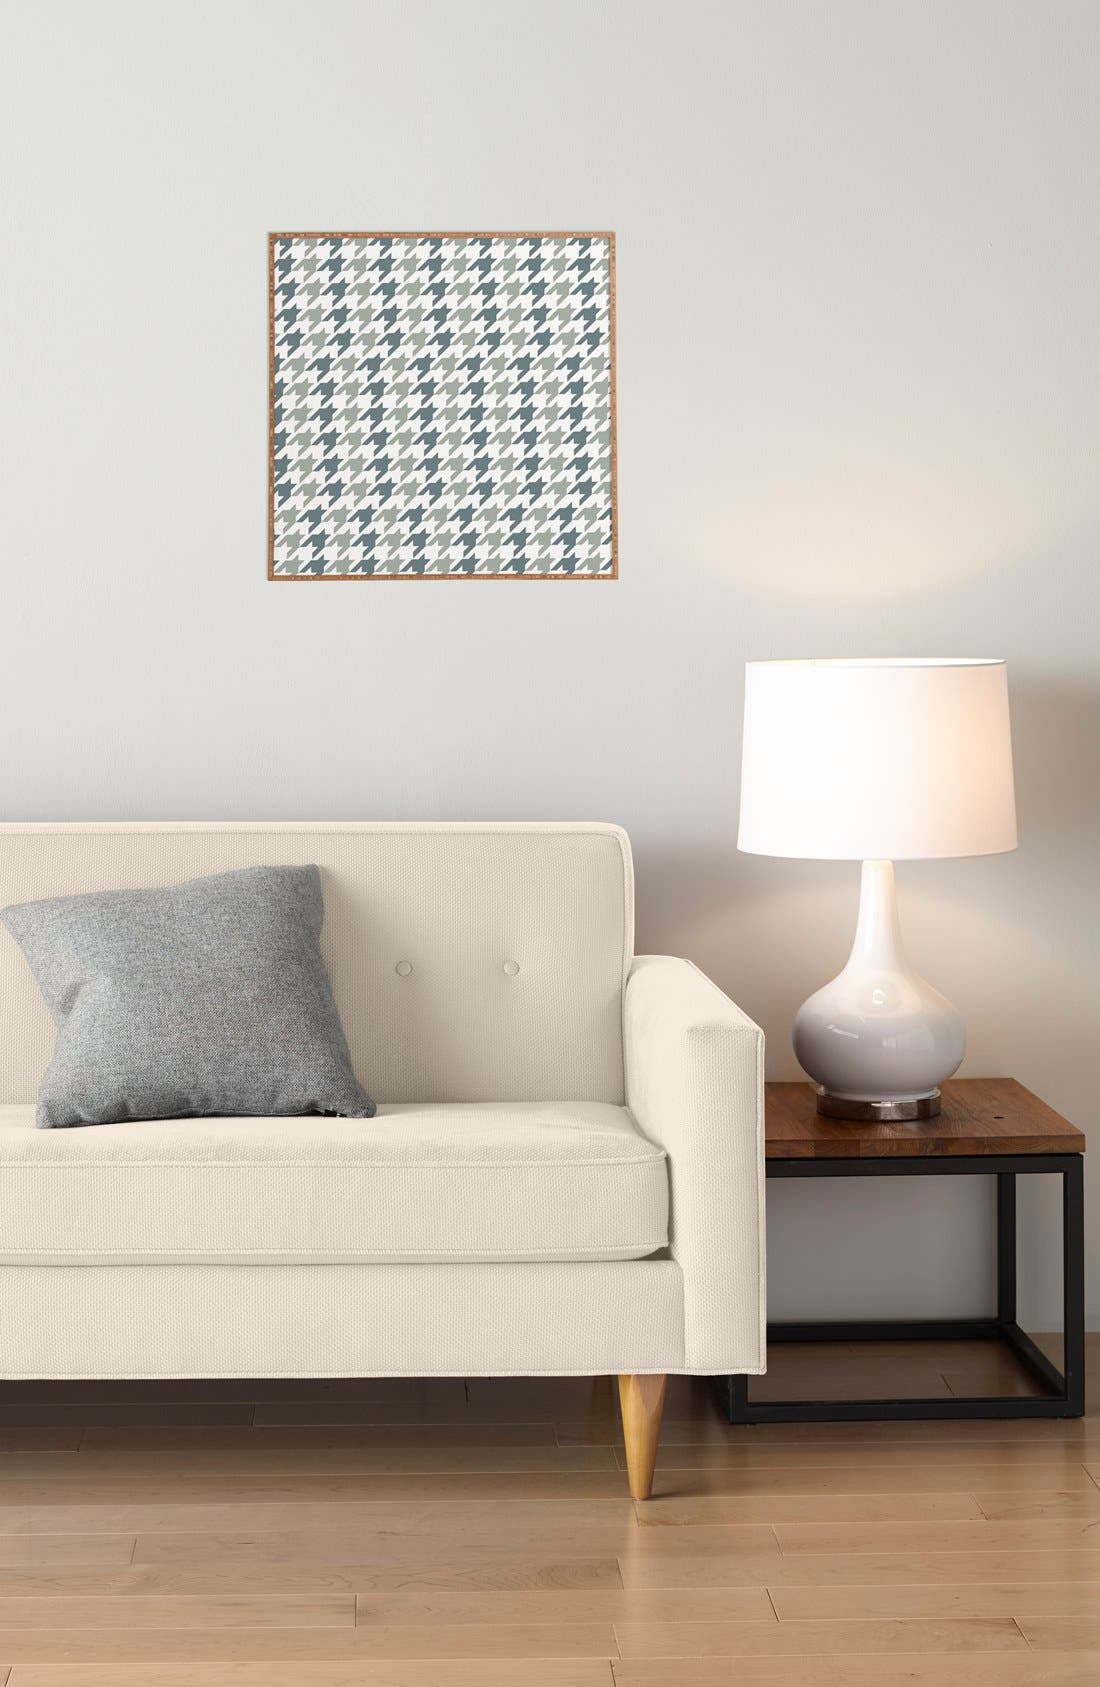 'Houndstooth' Framed Wall Art,                             Alternate thumbnail 3, color,                             BLUE